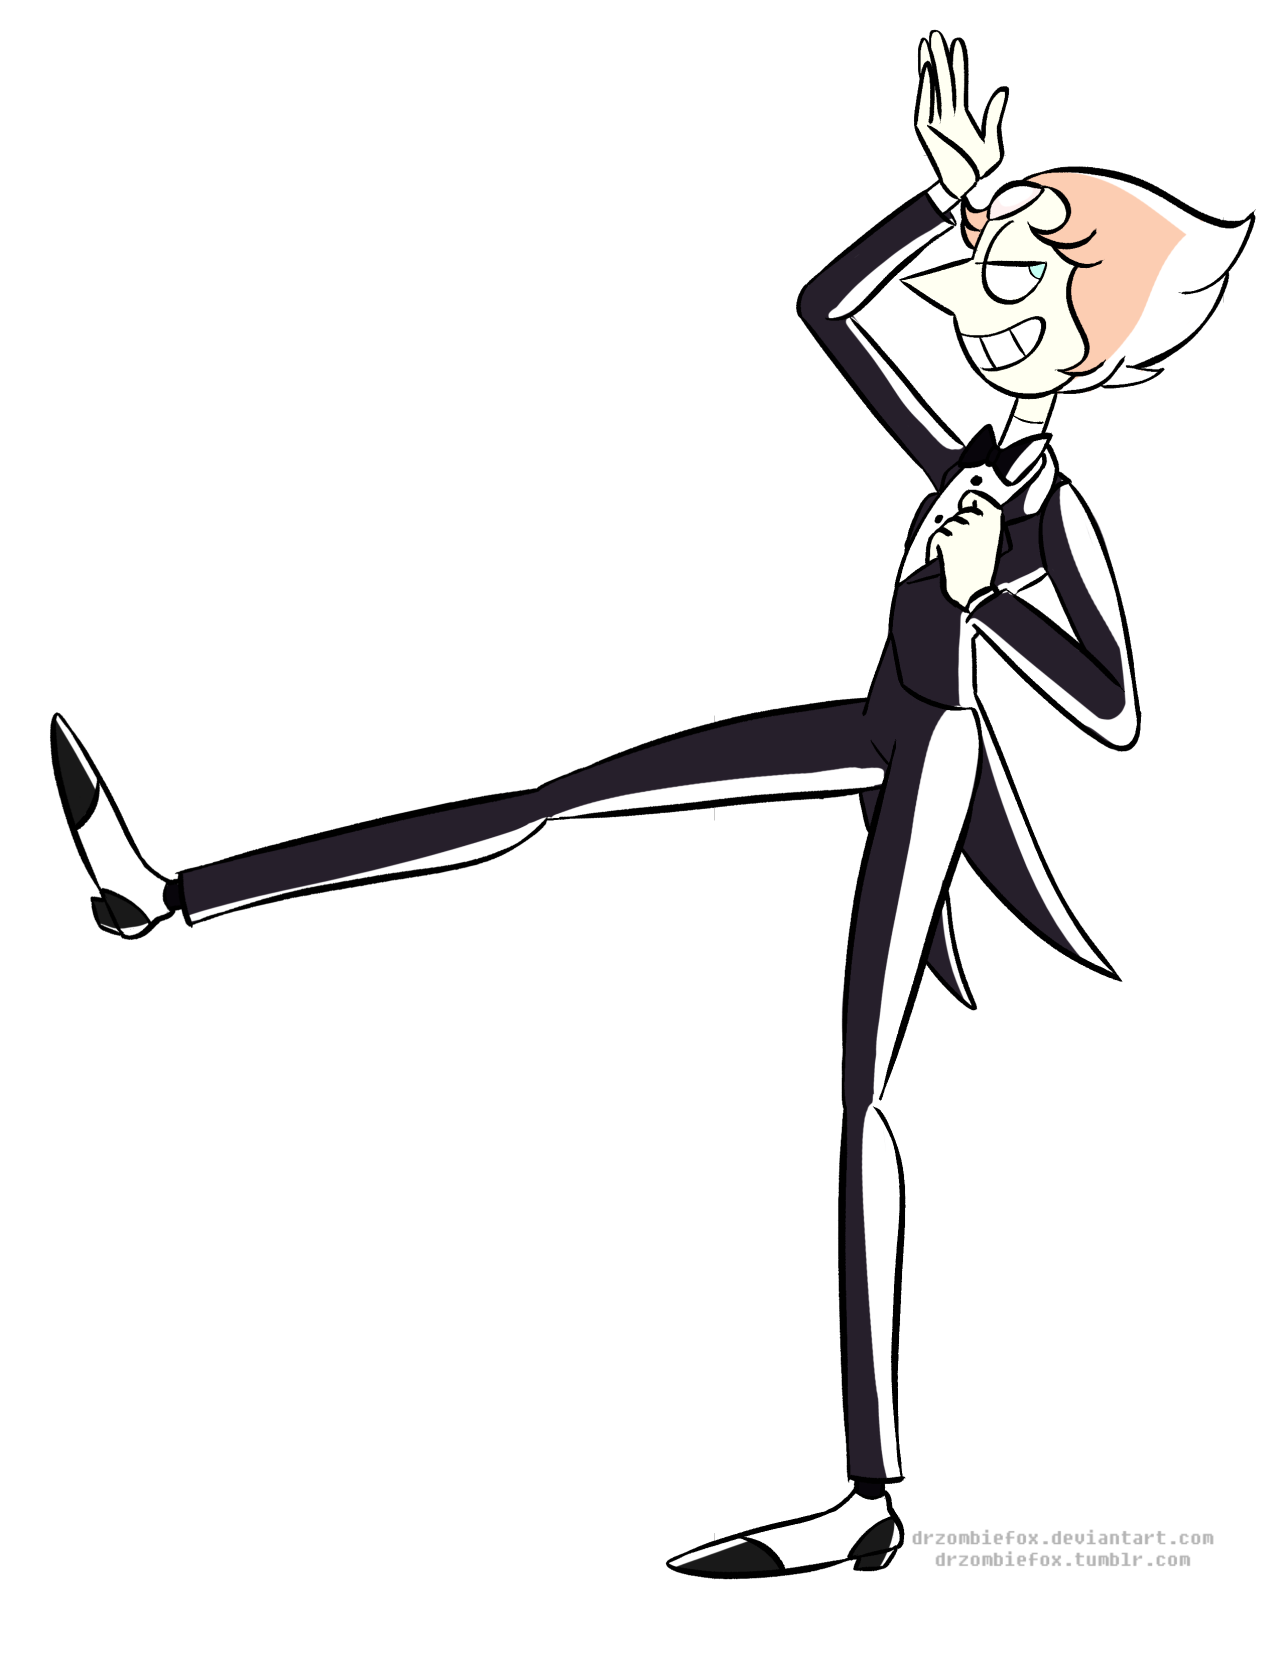 There was a lot in that new promo but I think this was my favorite. Pearl in a tuxedo is just ahhhhh